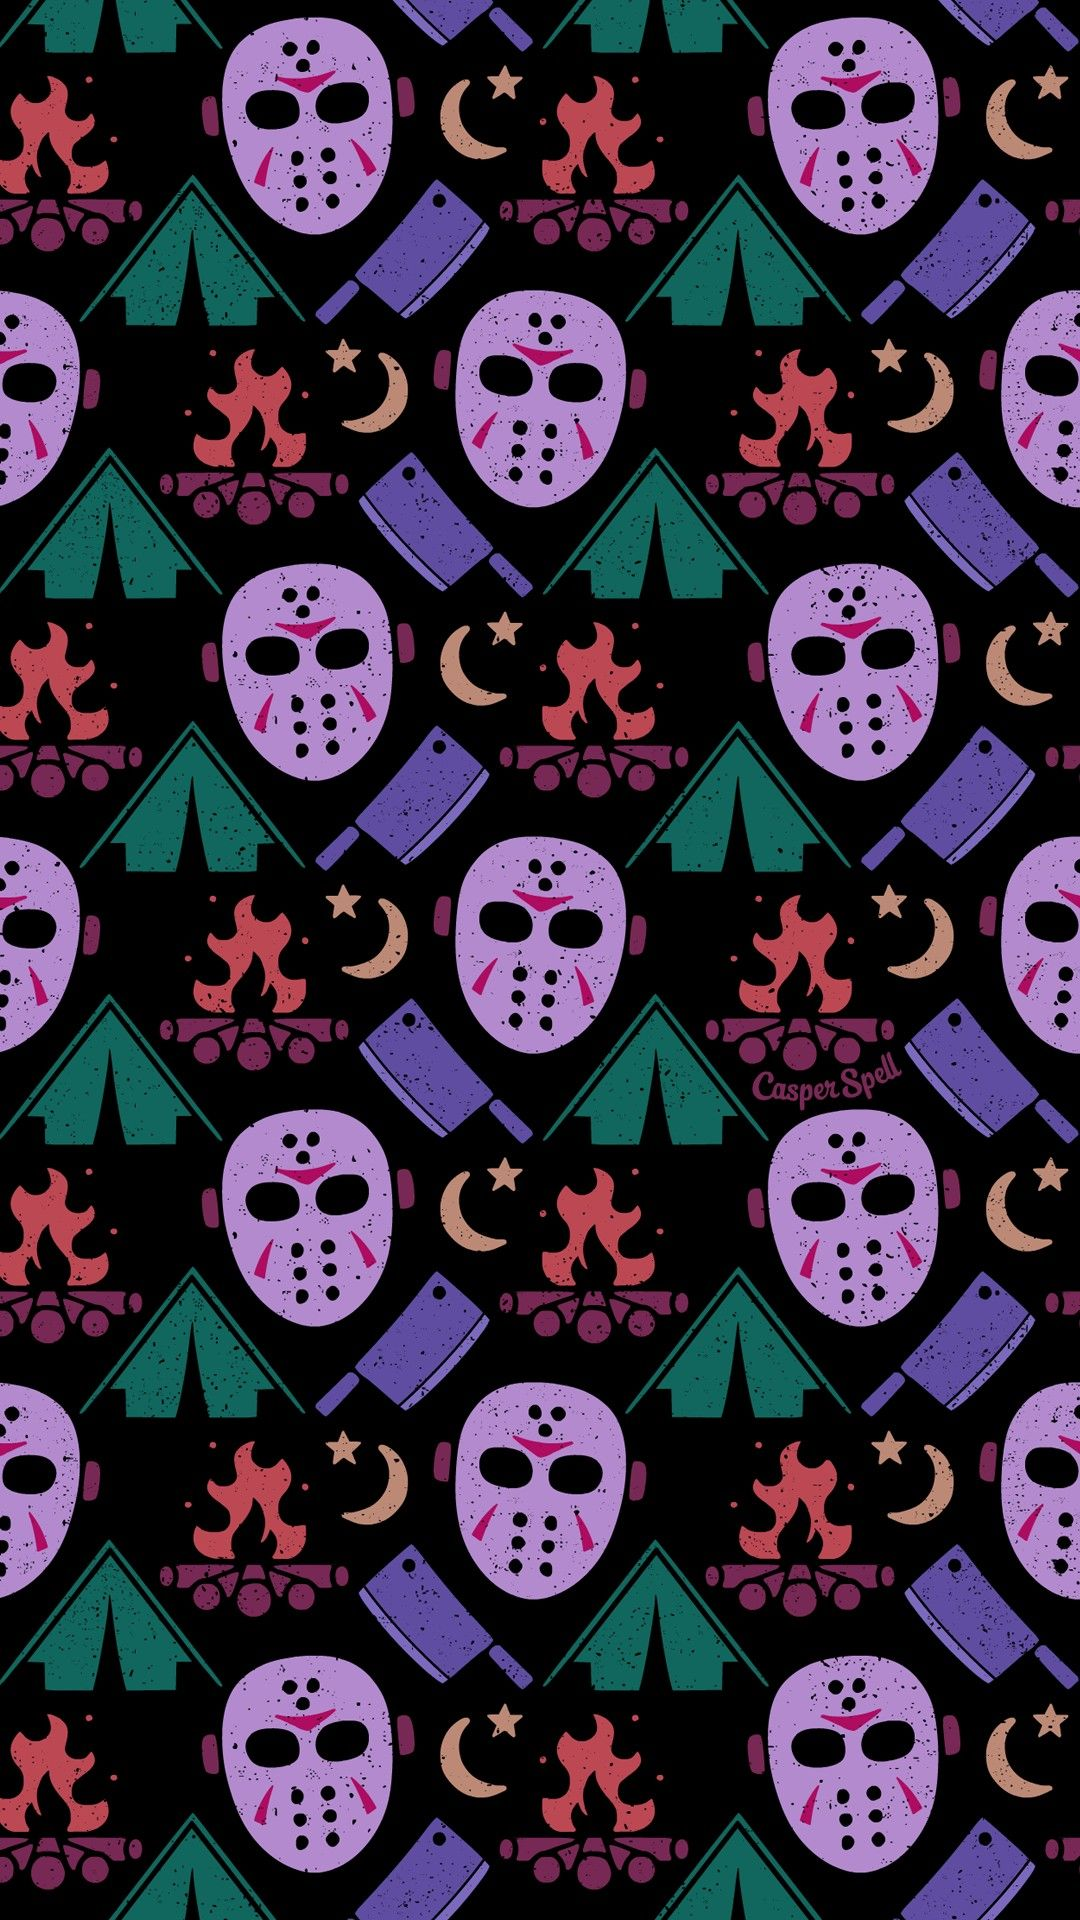 Camping With Jason Voorhees Halloween Wallpaper Iphone Halloween Wallpaper Art Wallpaper